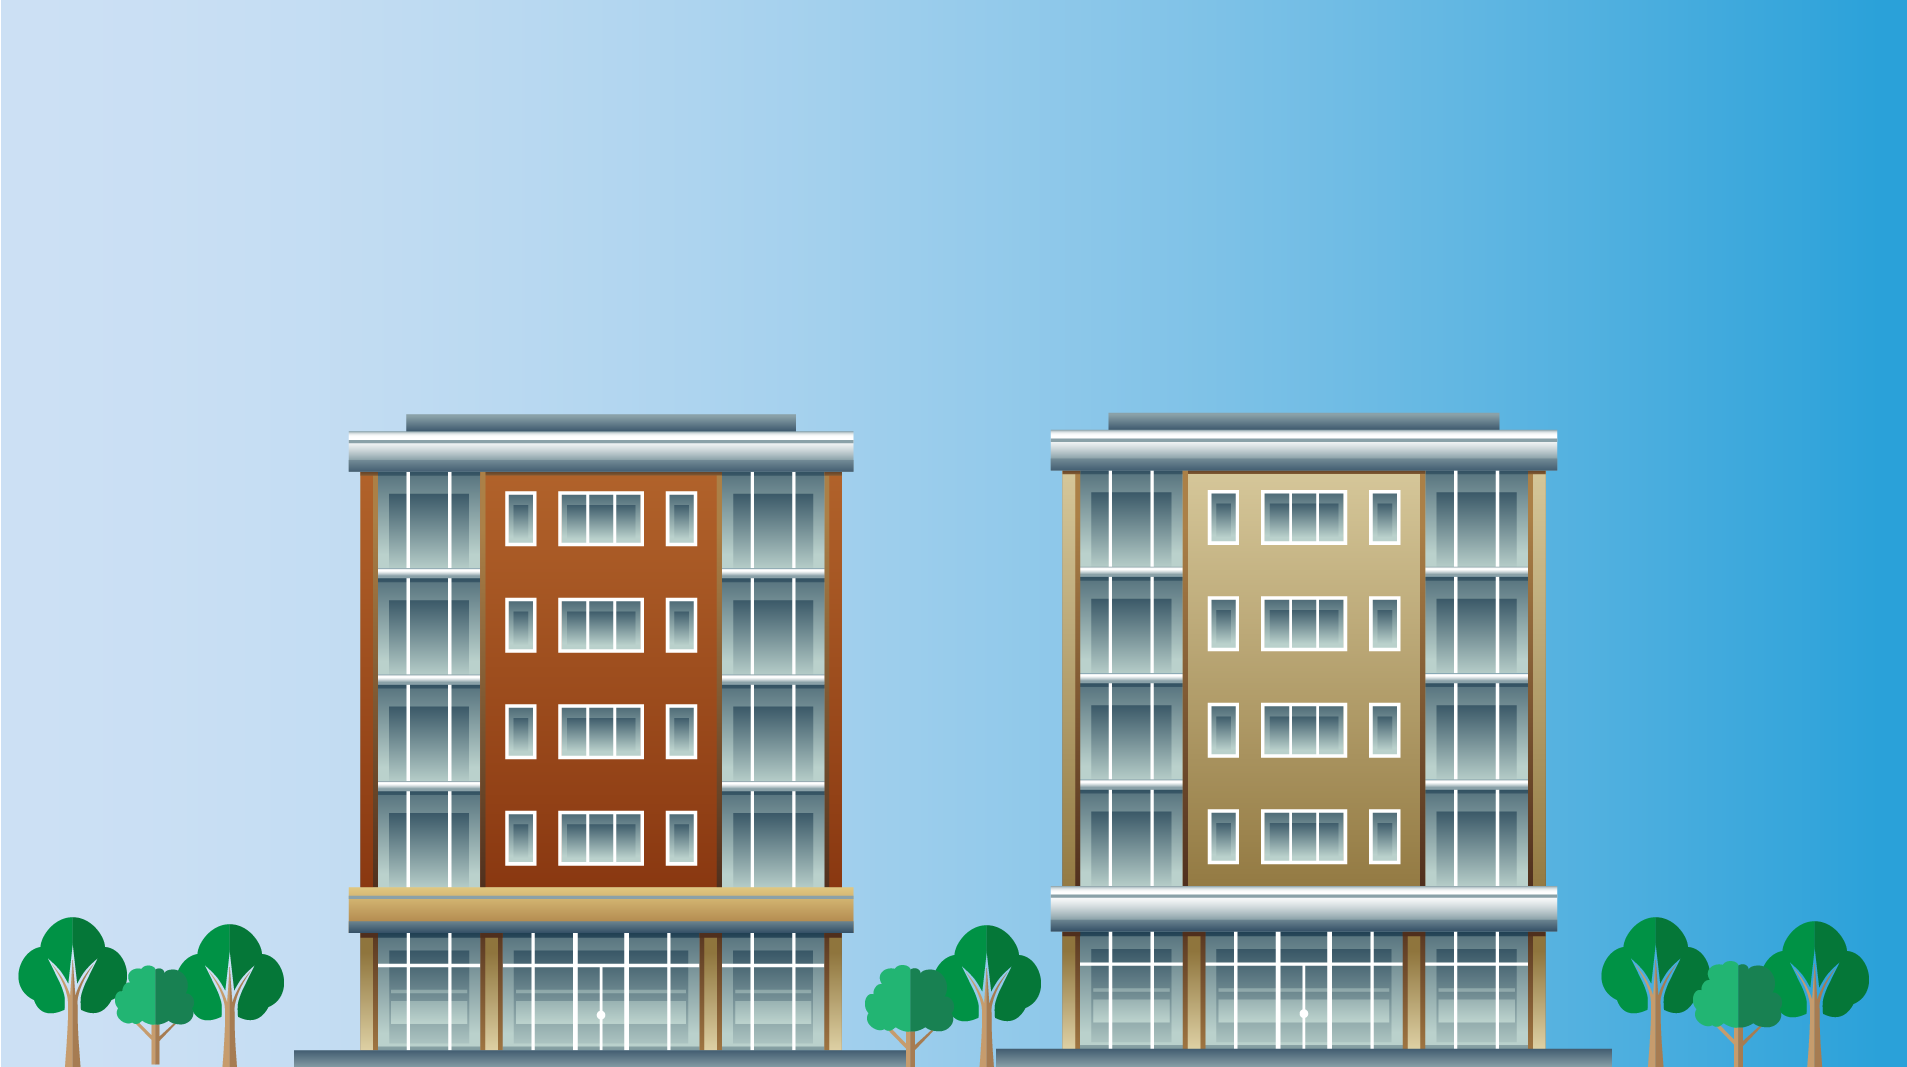 Two apartment buildings with trees